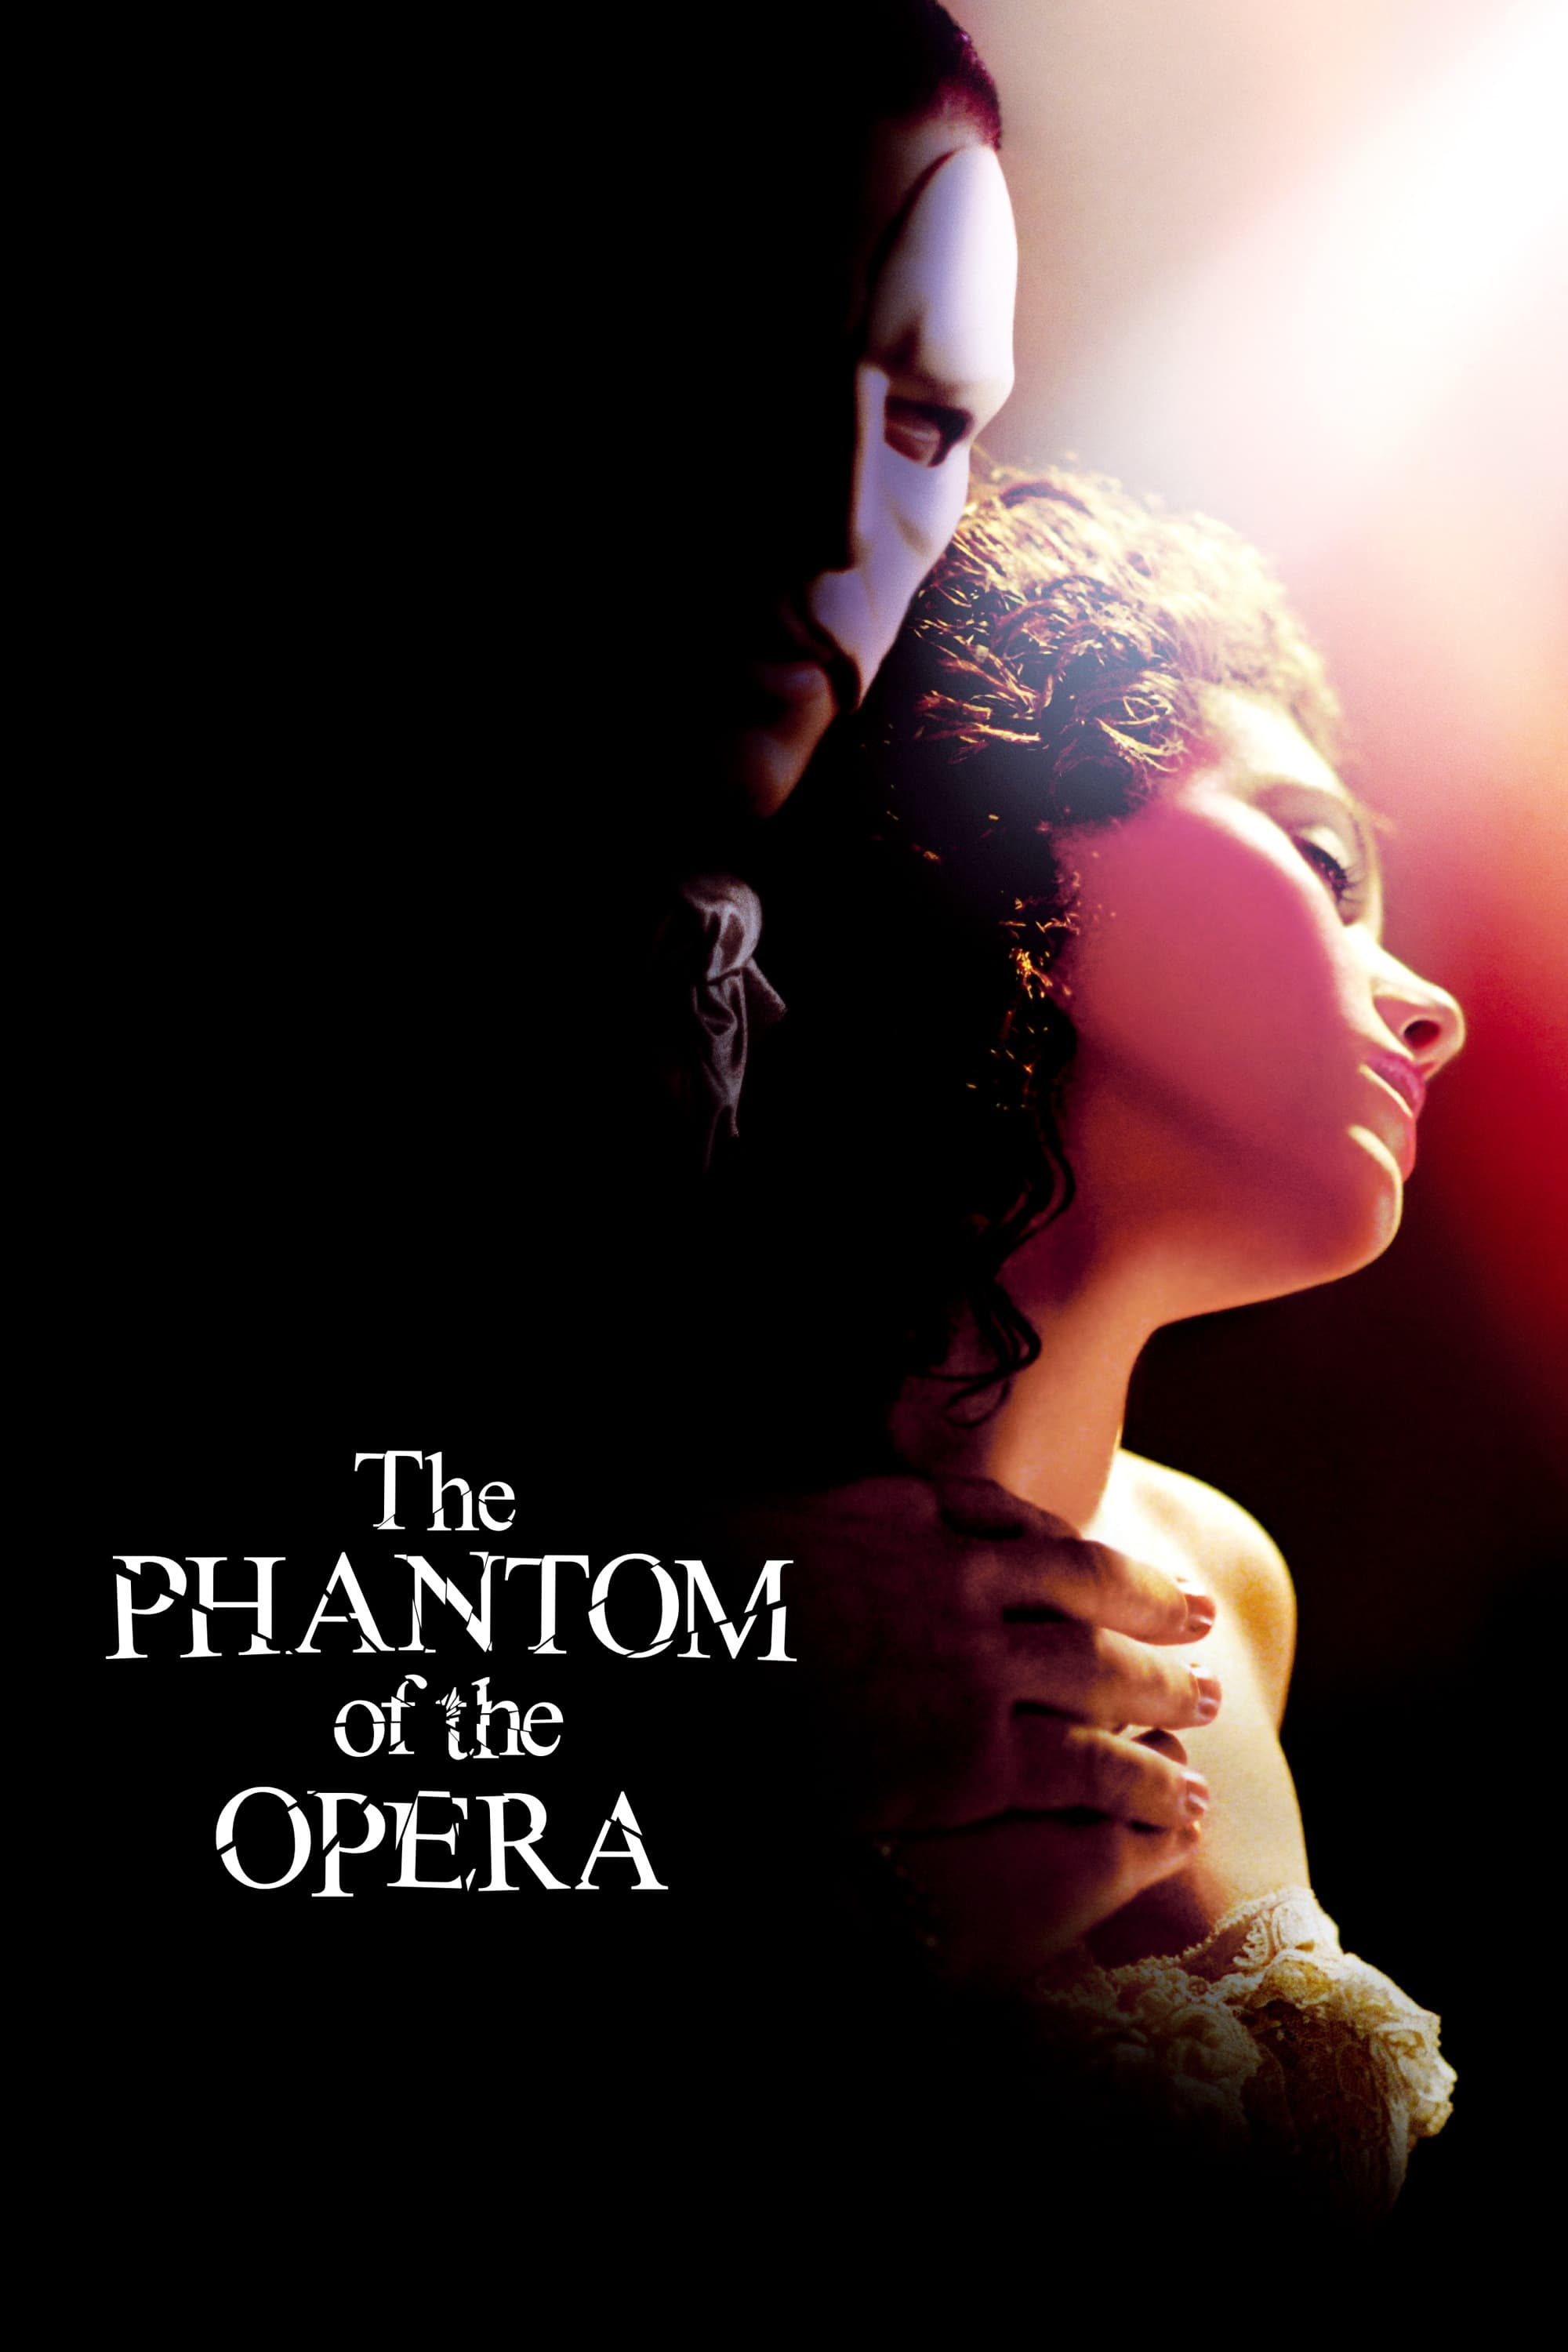 The Phantom of the Opera 2004  Posters  The Movie